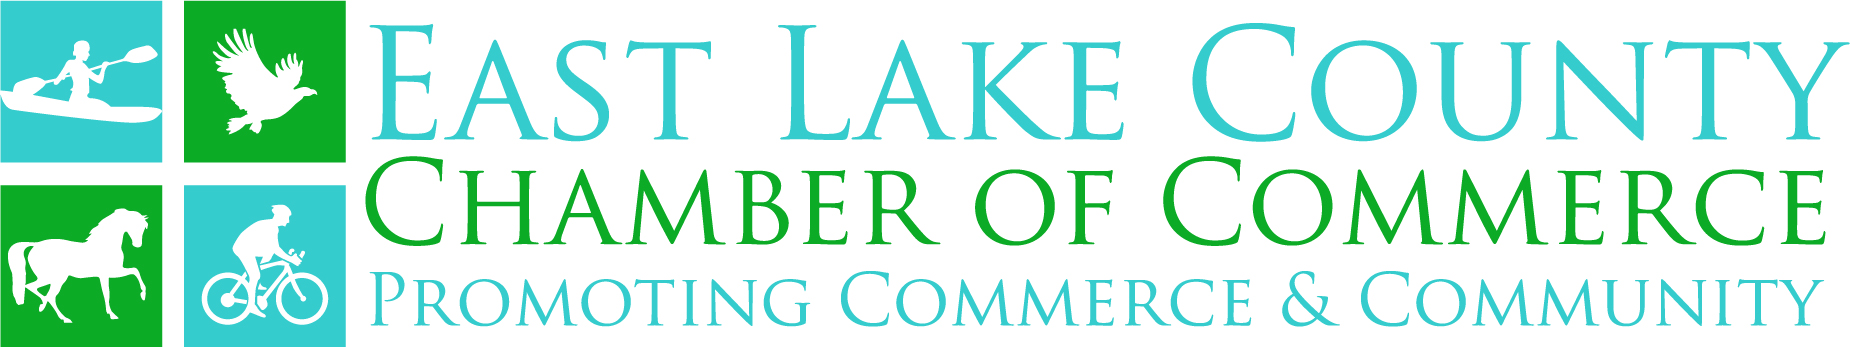 East Lake County Chamber of Commerce